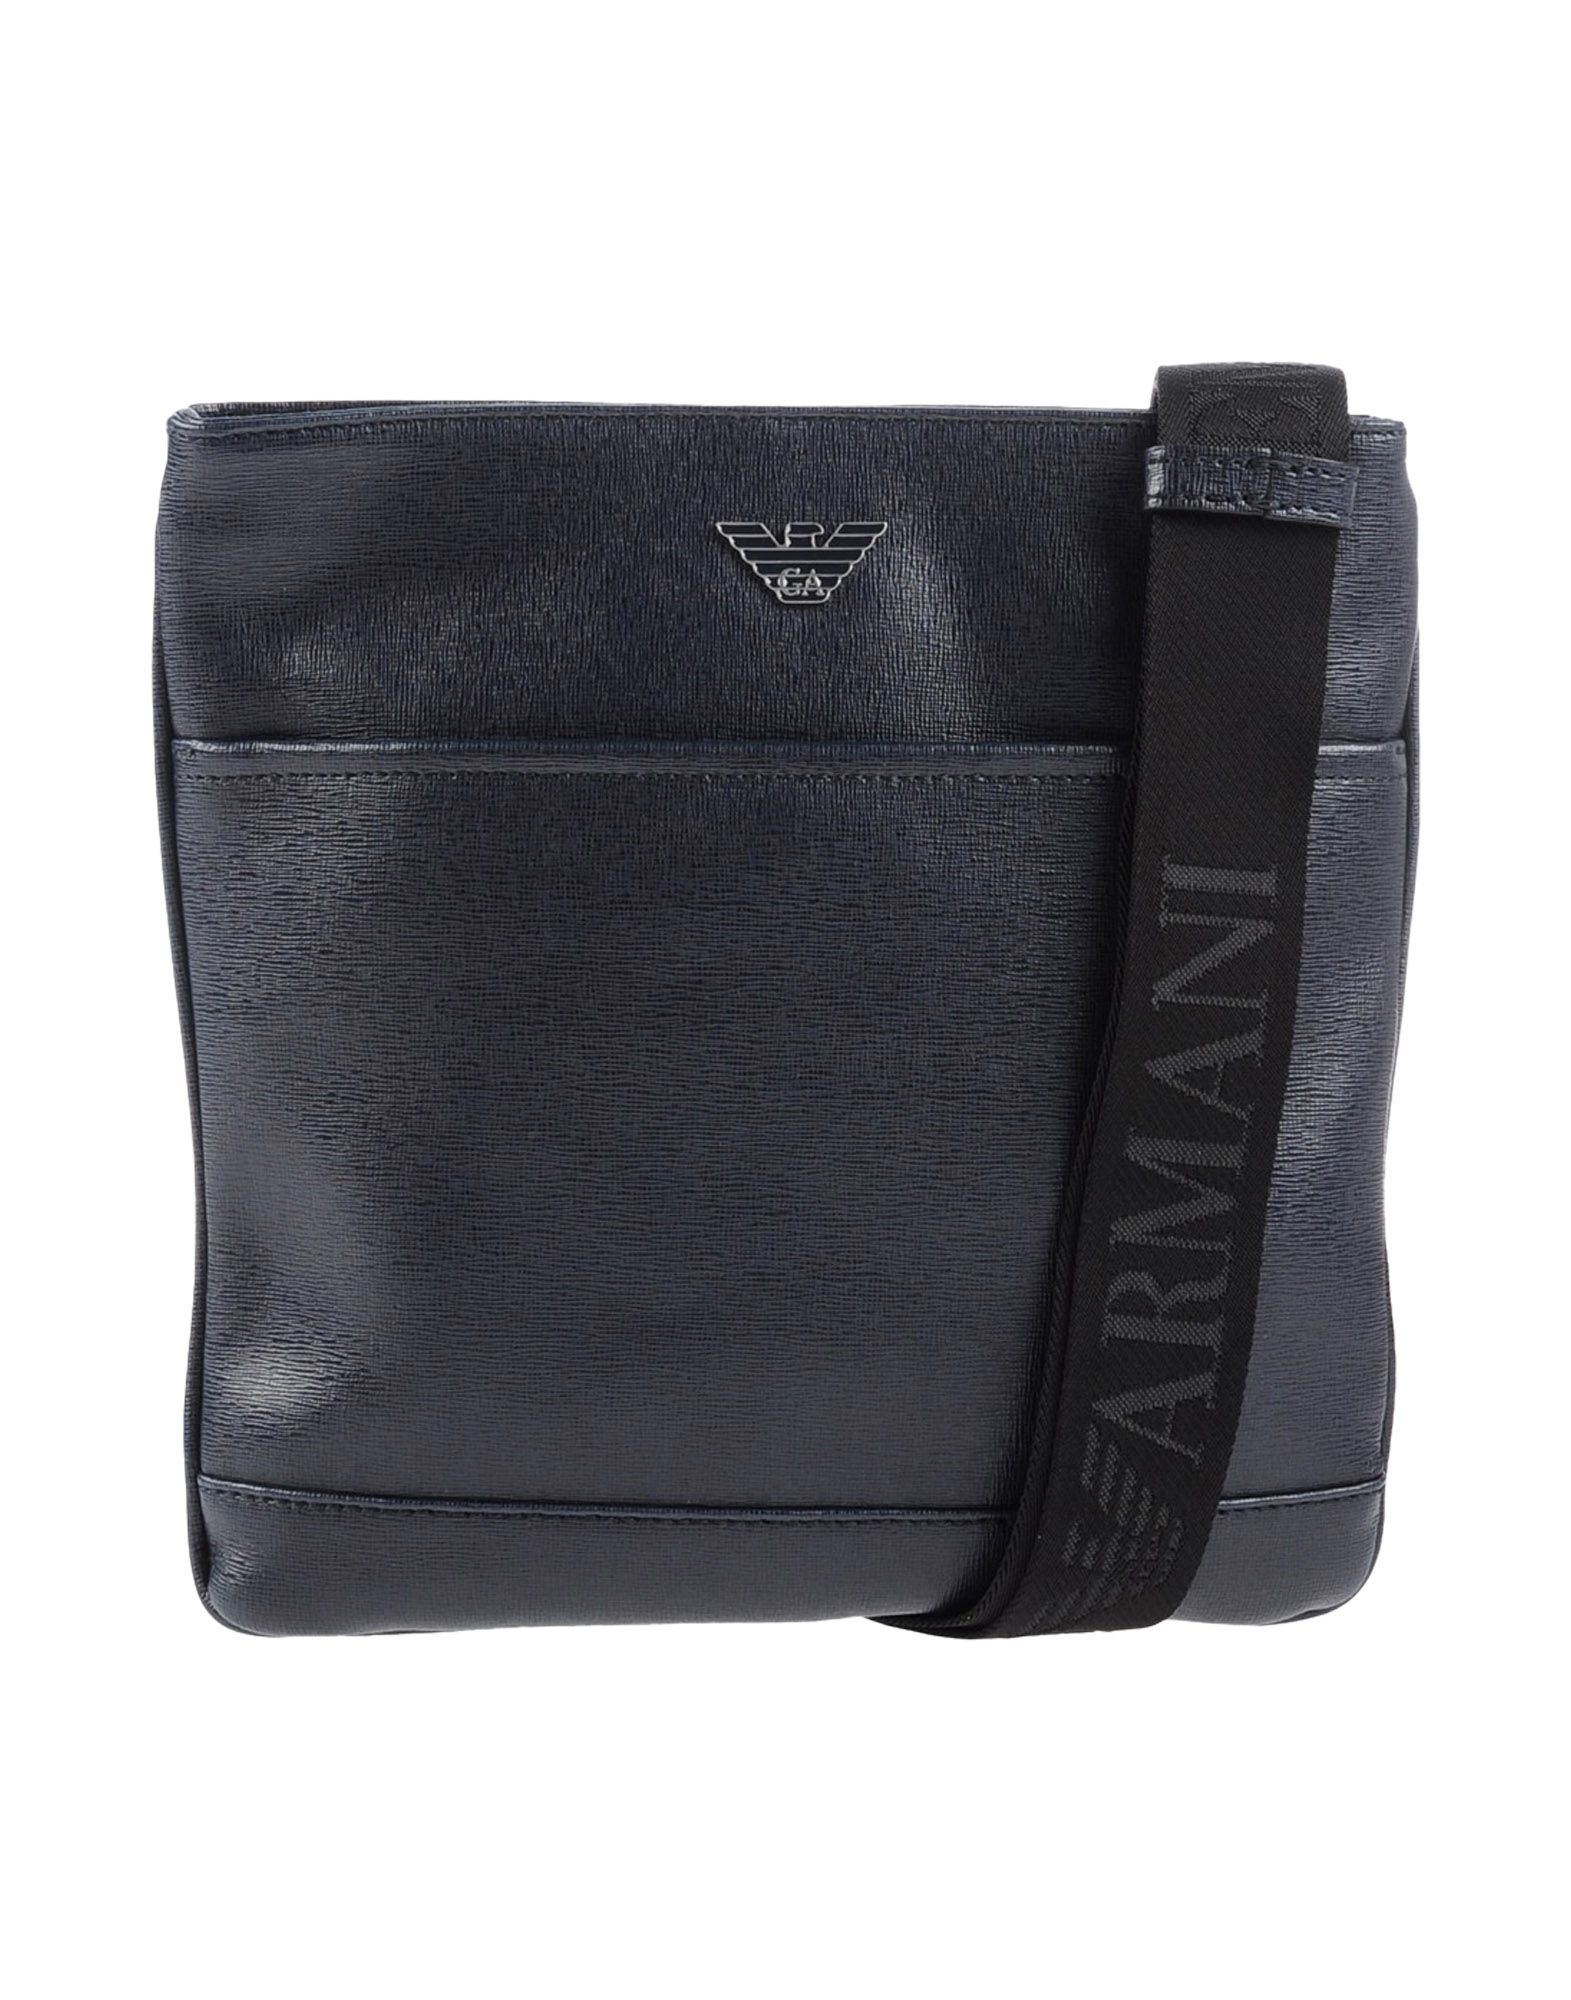 Emporio armani Leather Cross-Body Bag in Blue for Men | Lyst